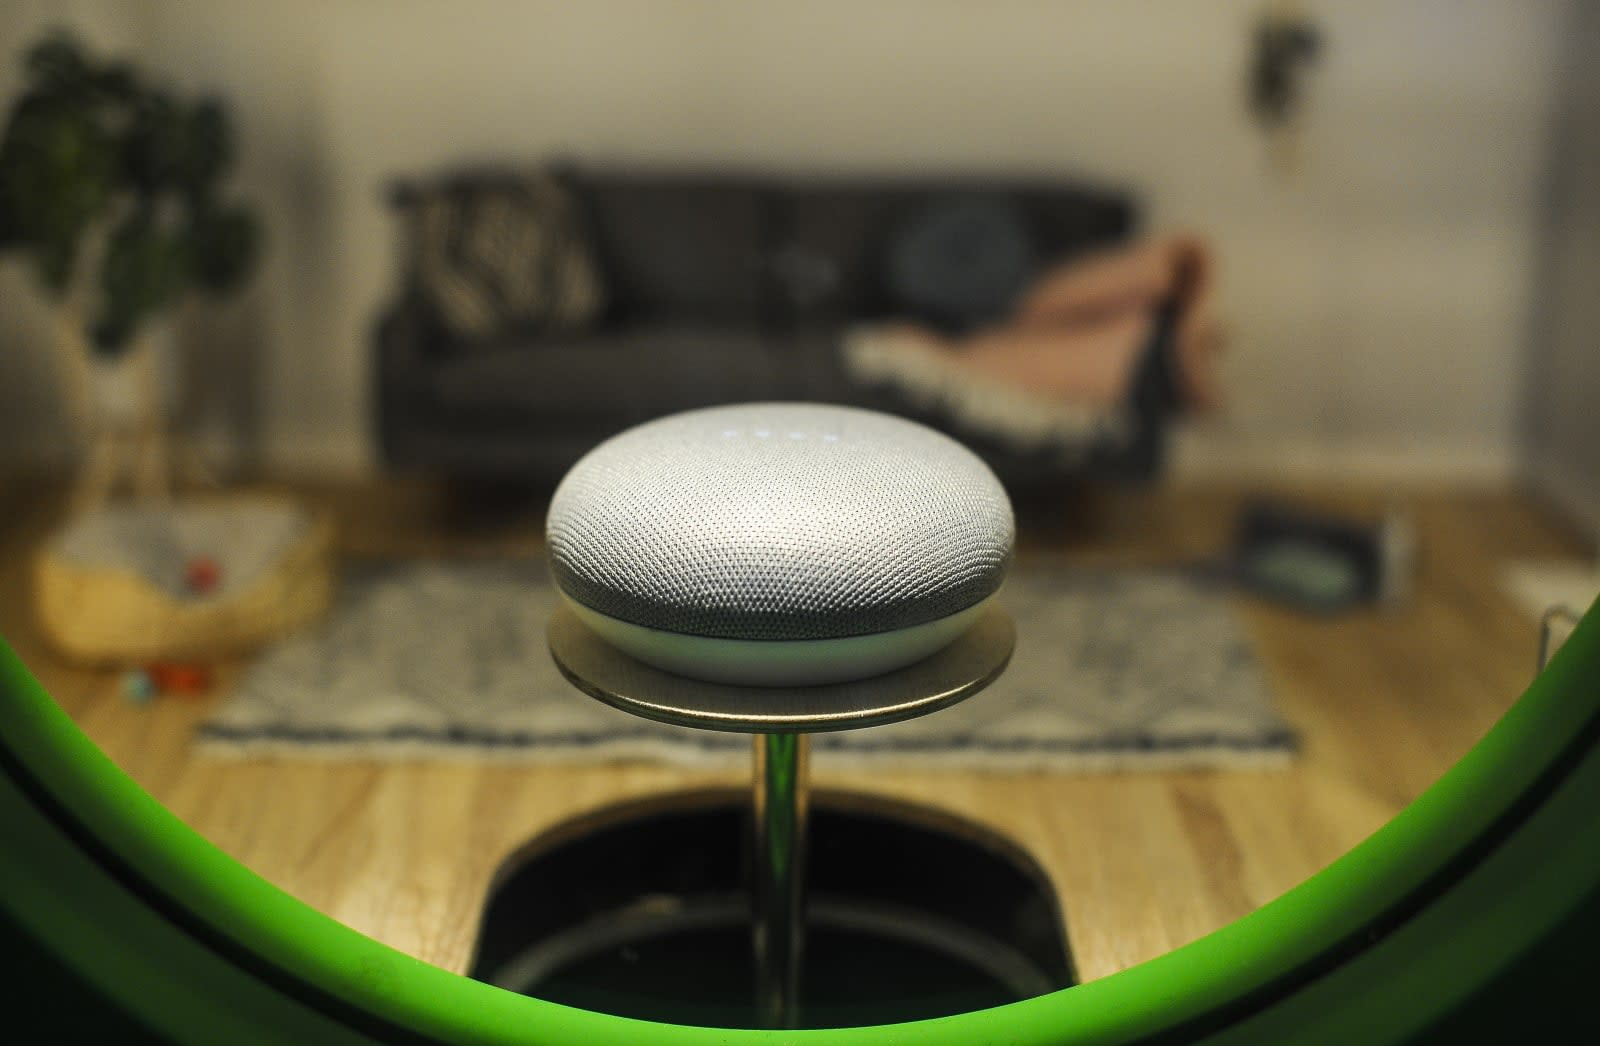 Spotify Family plan subscribers in the UK can get a free Google Home